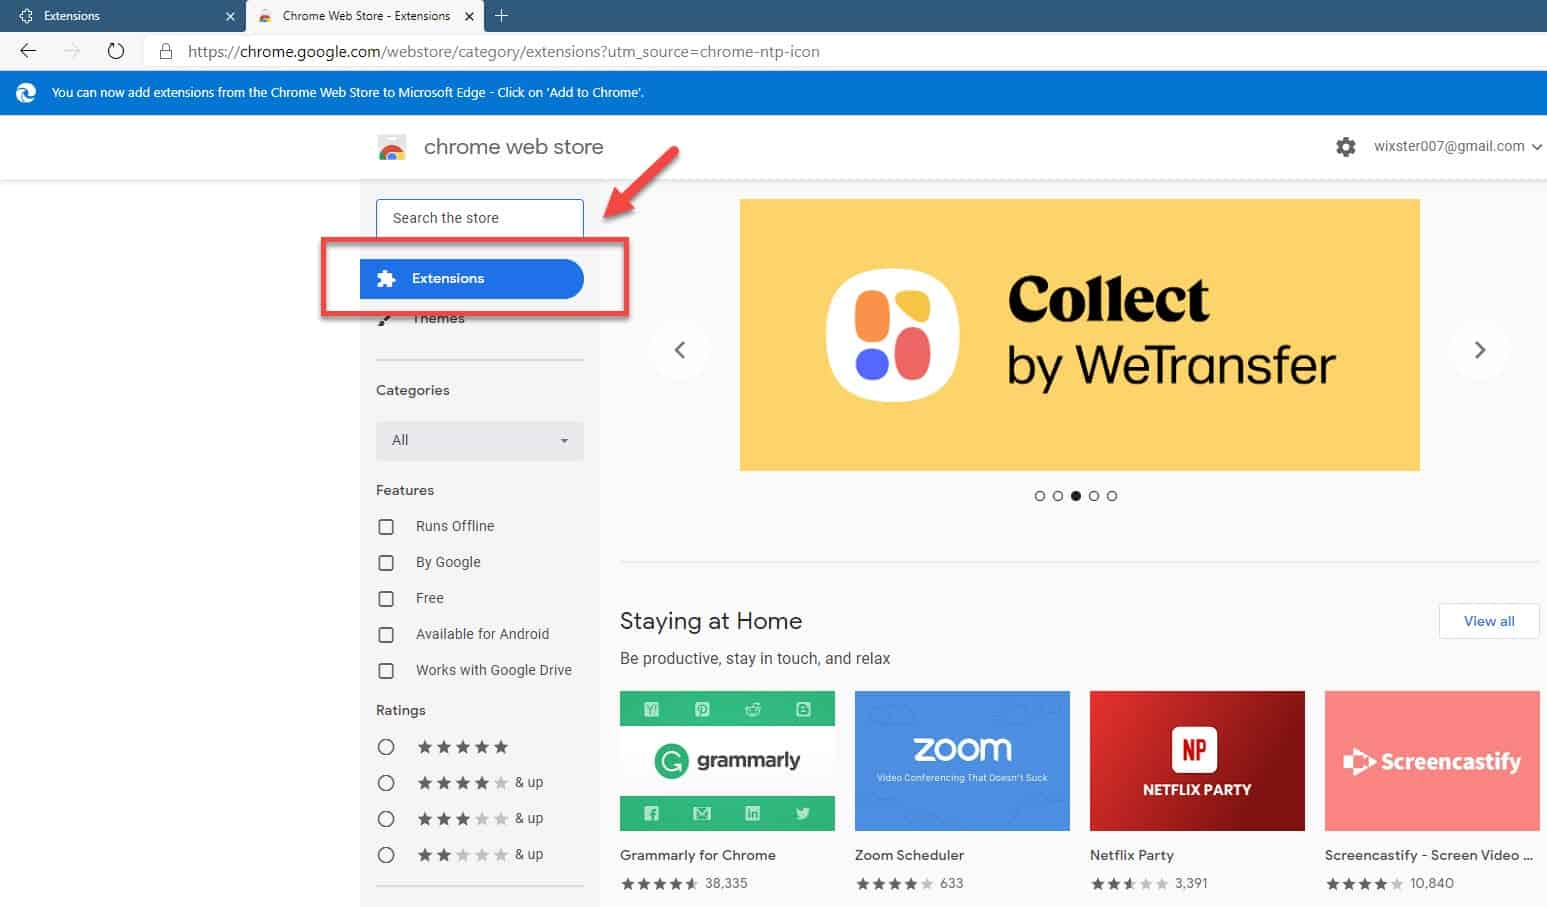 chrome web store extensions